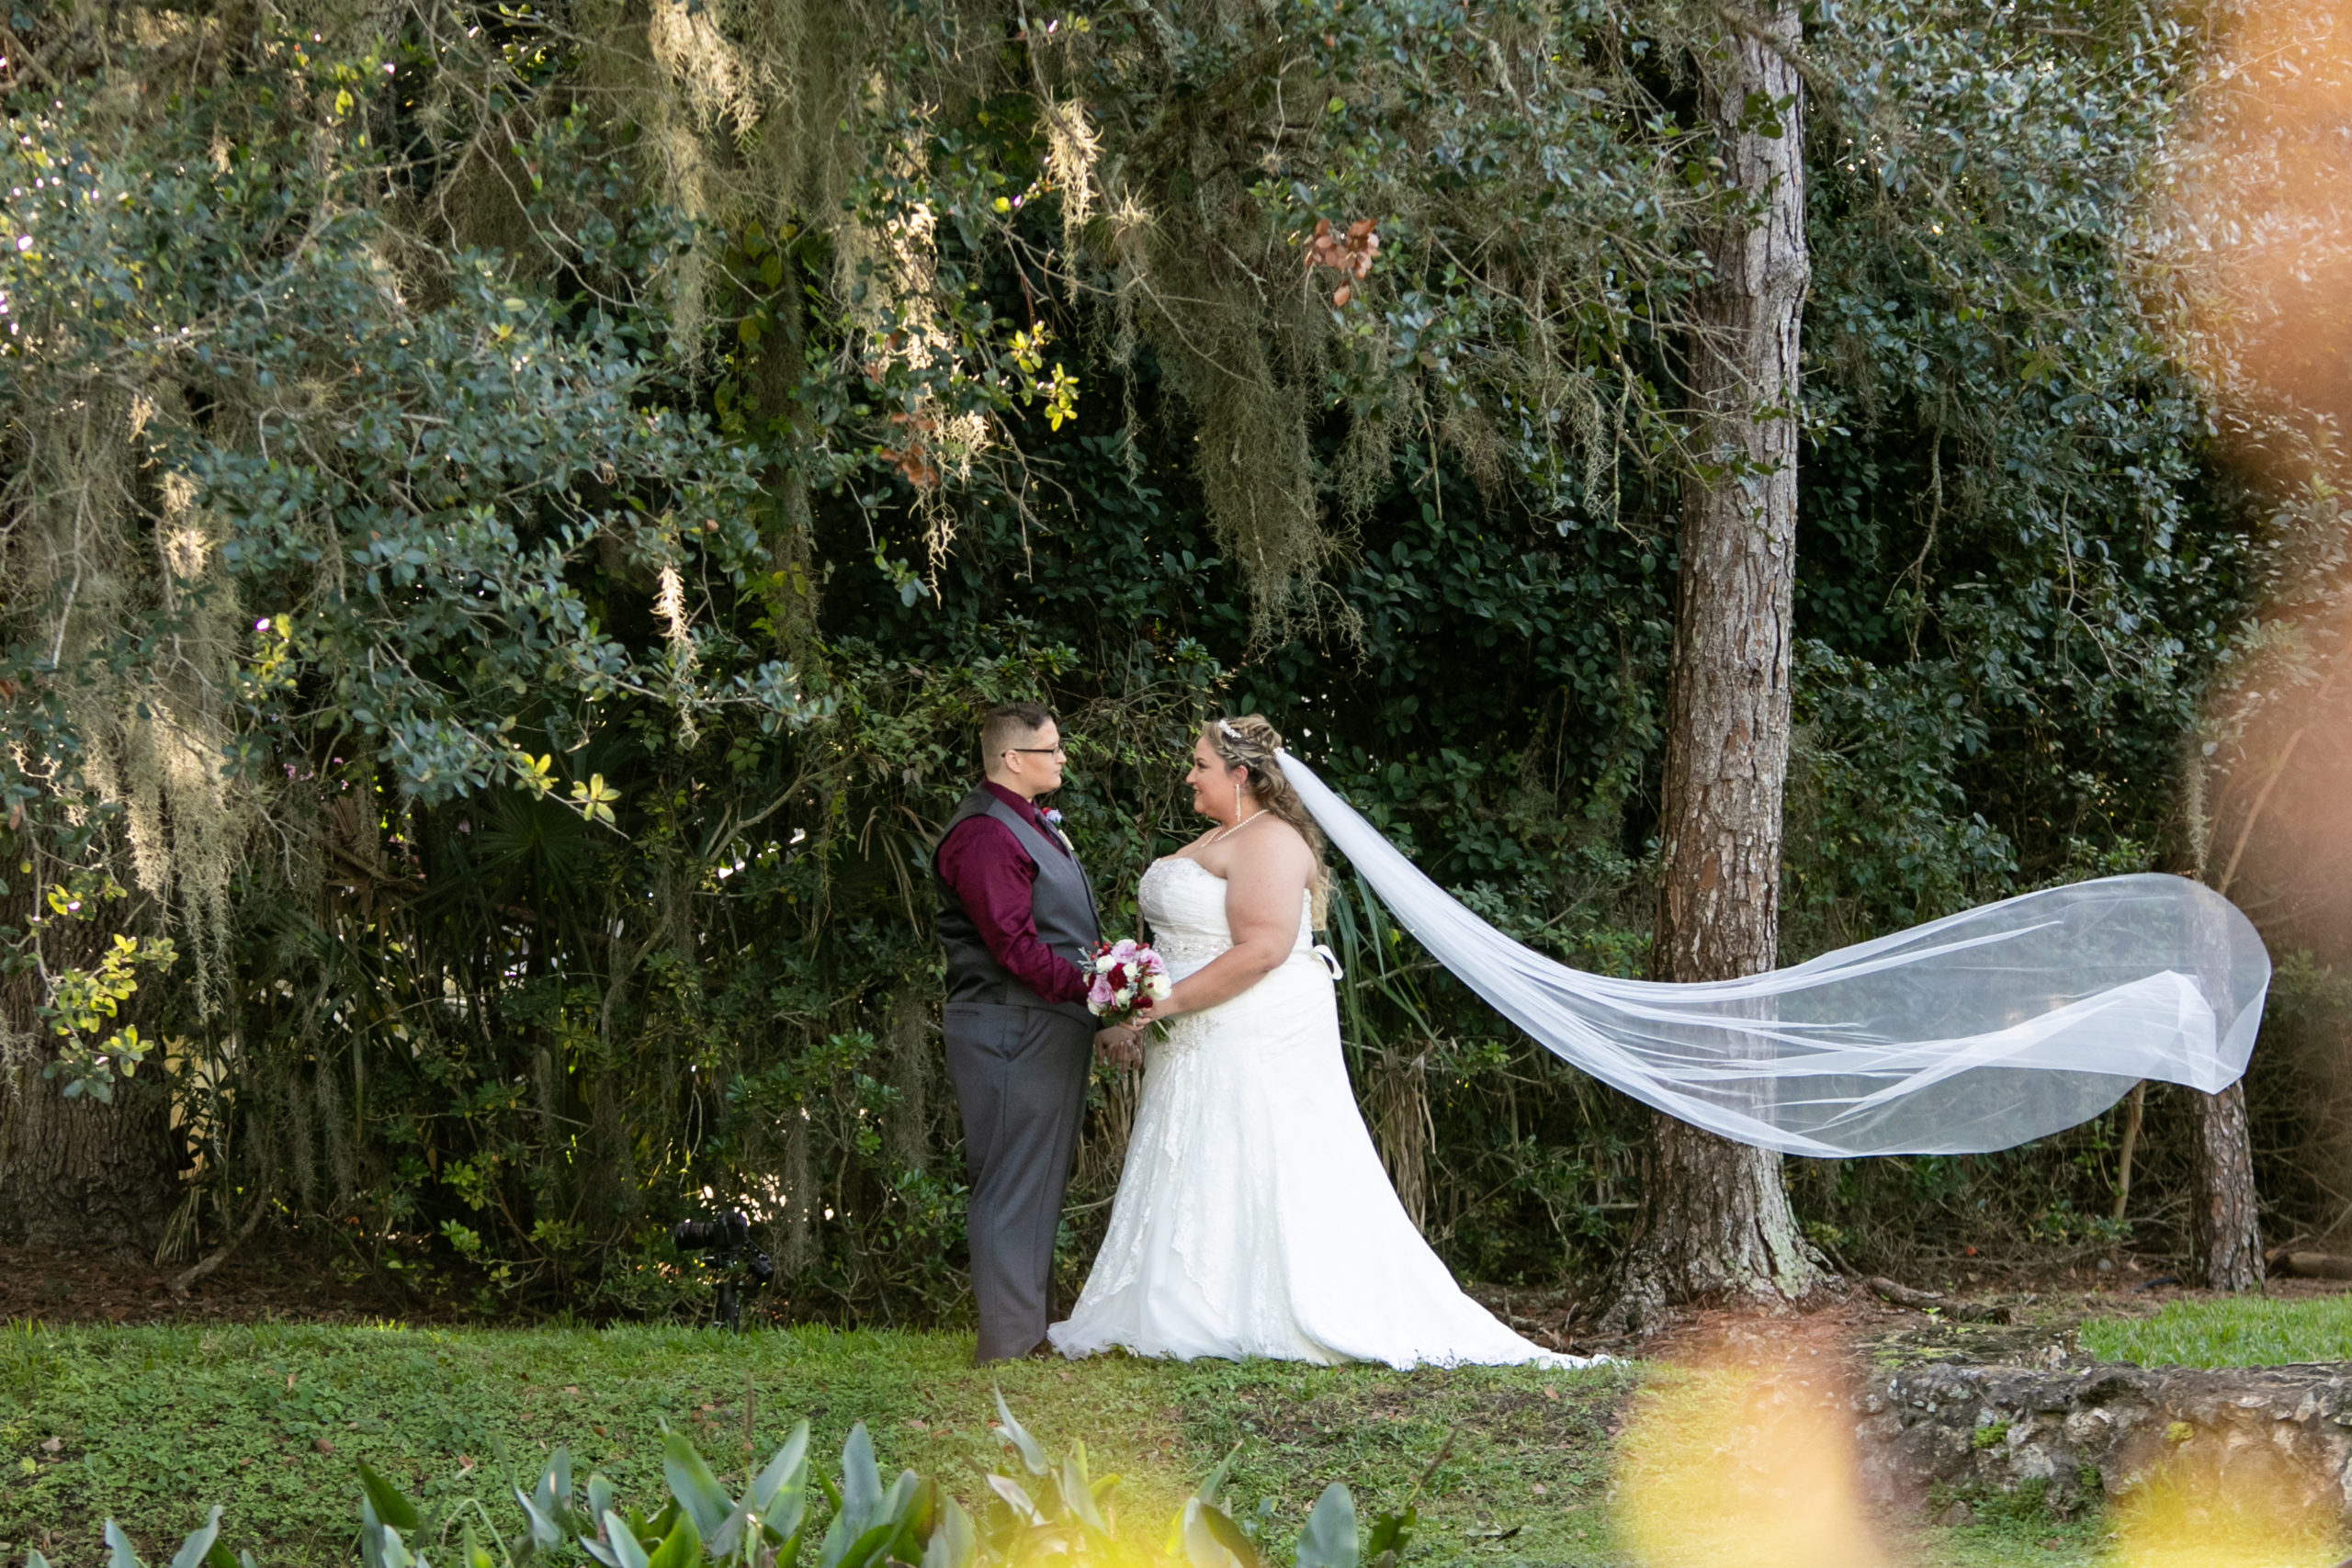 brides in front of greenery with veil blowing in the wind